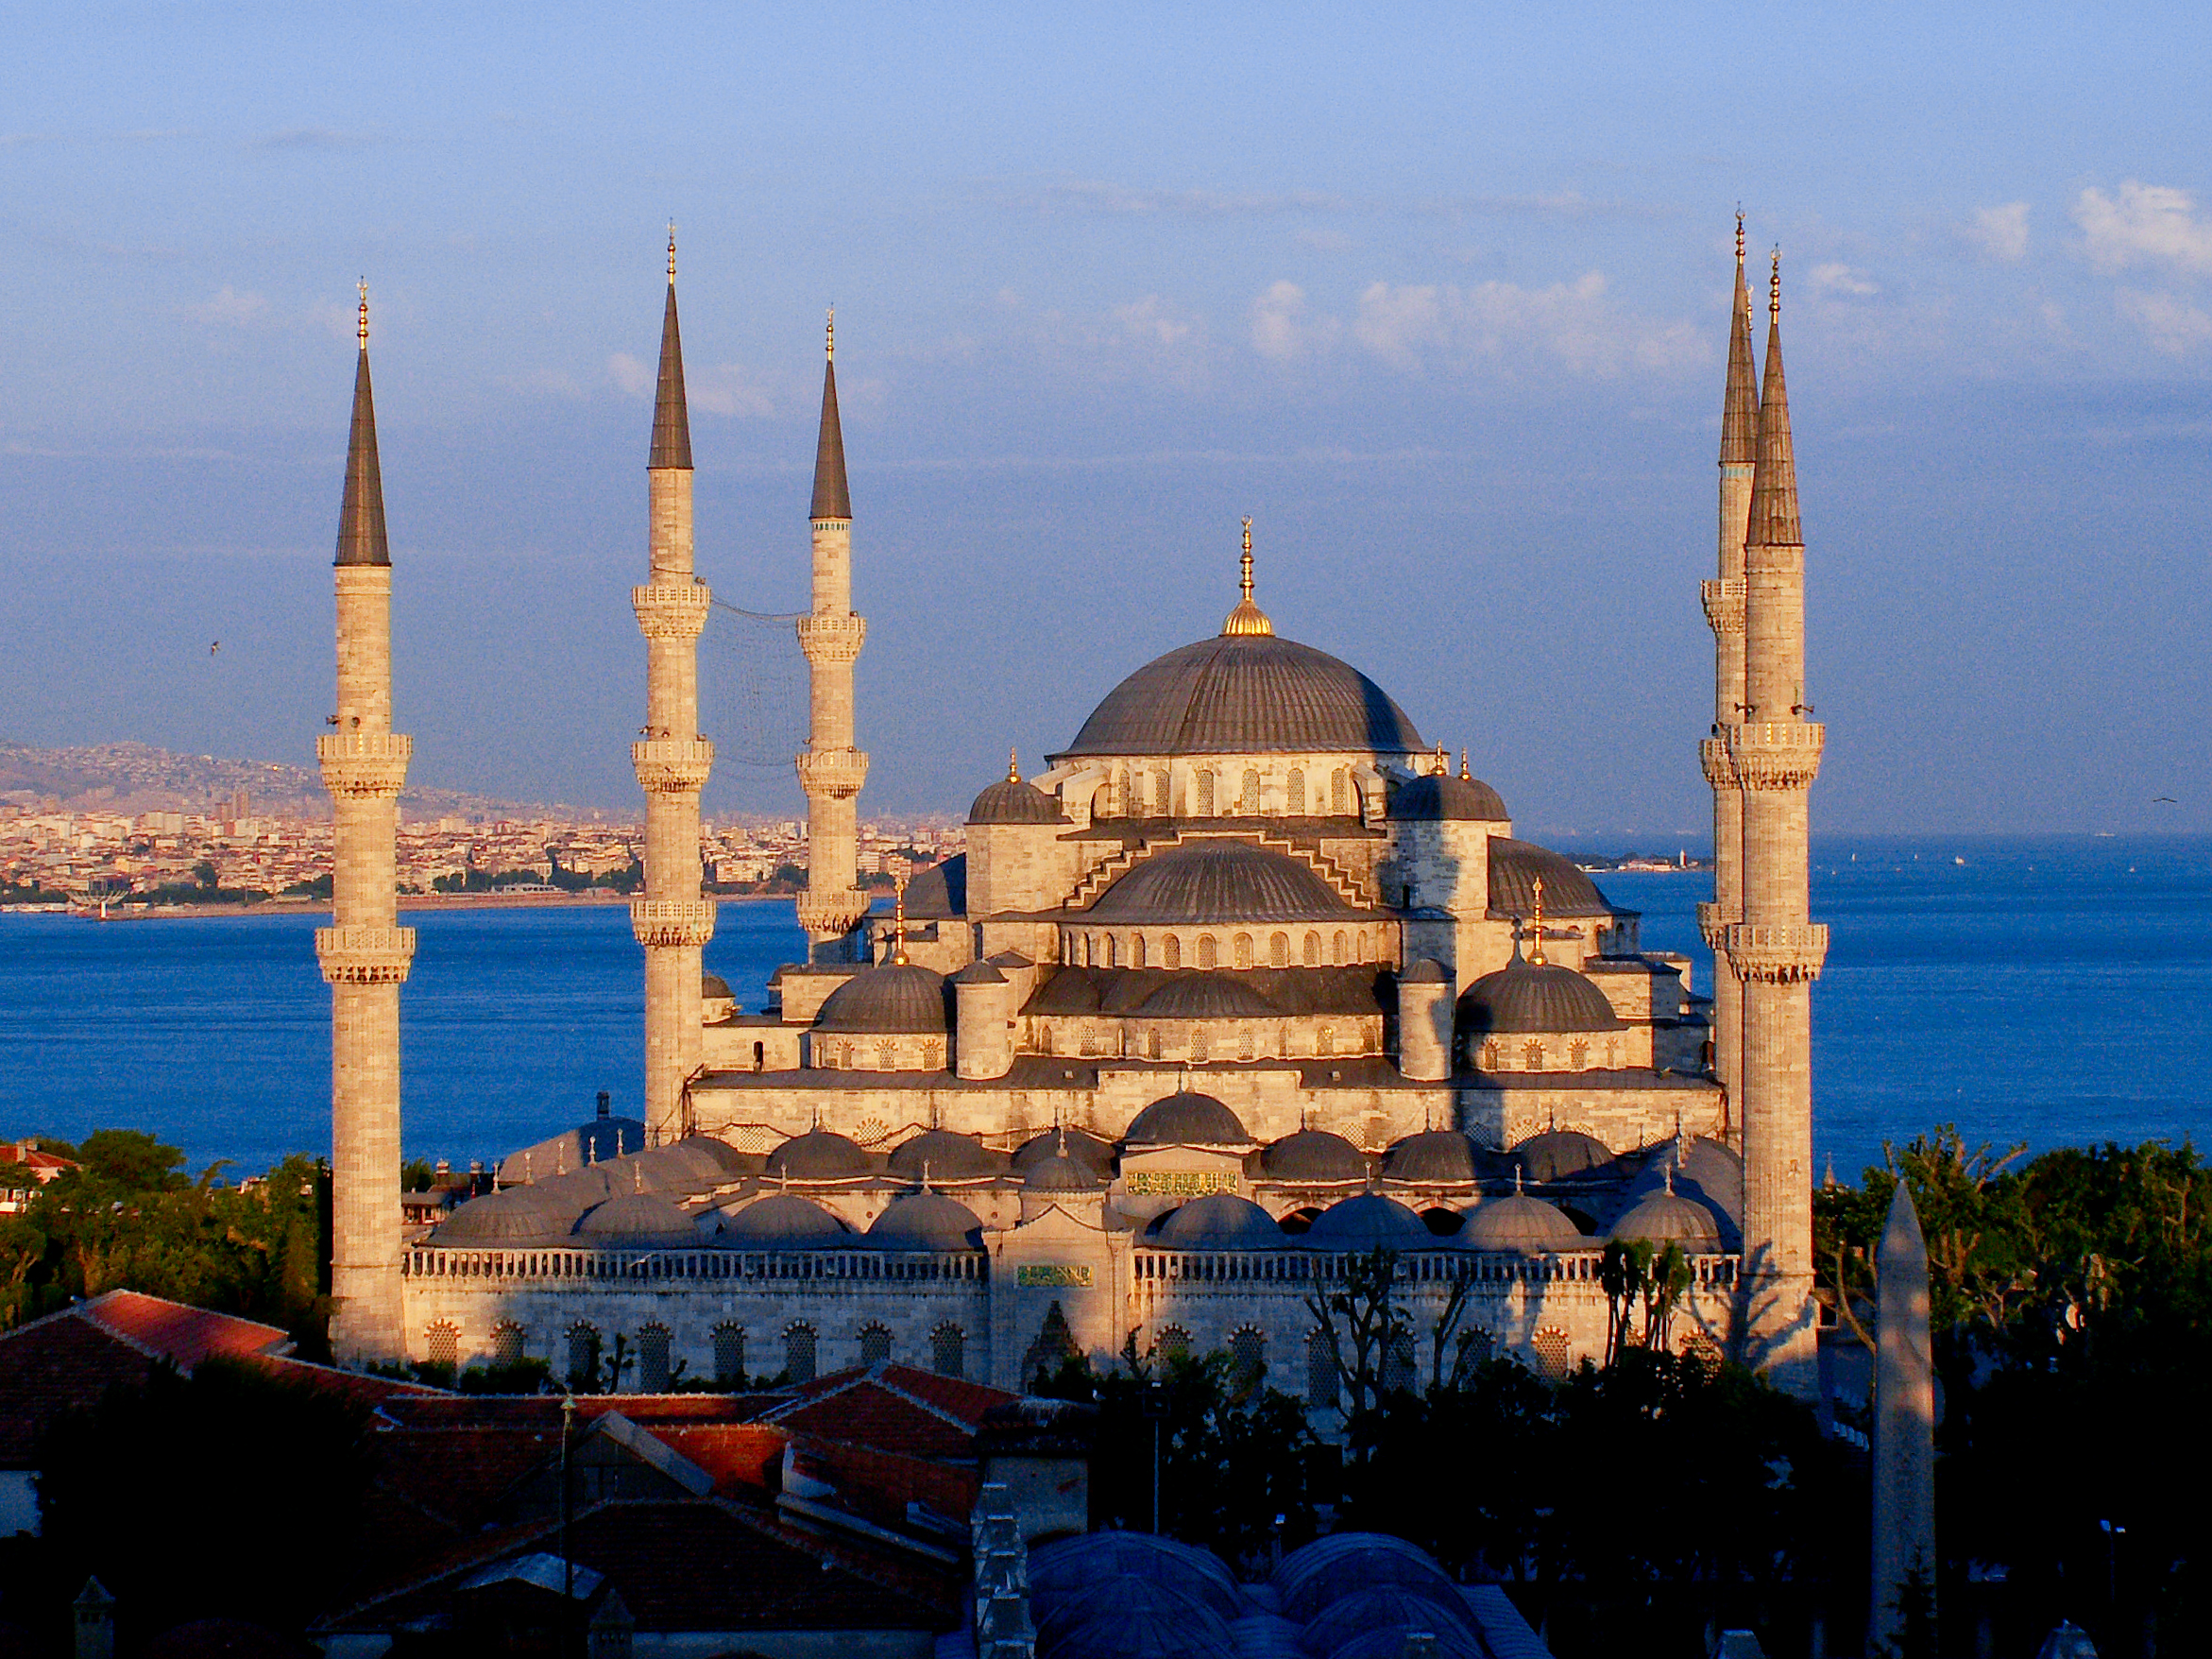 File:The Blue Mosque at sunset.jpg - Wikipedia